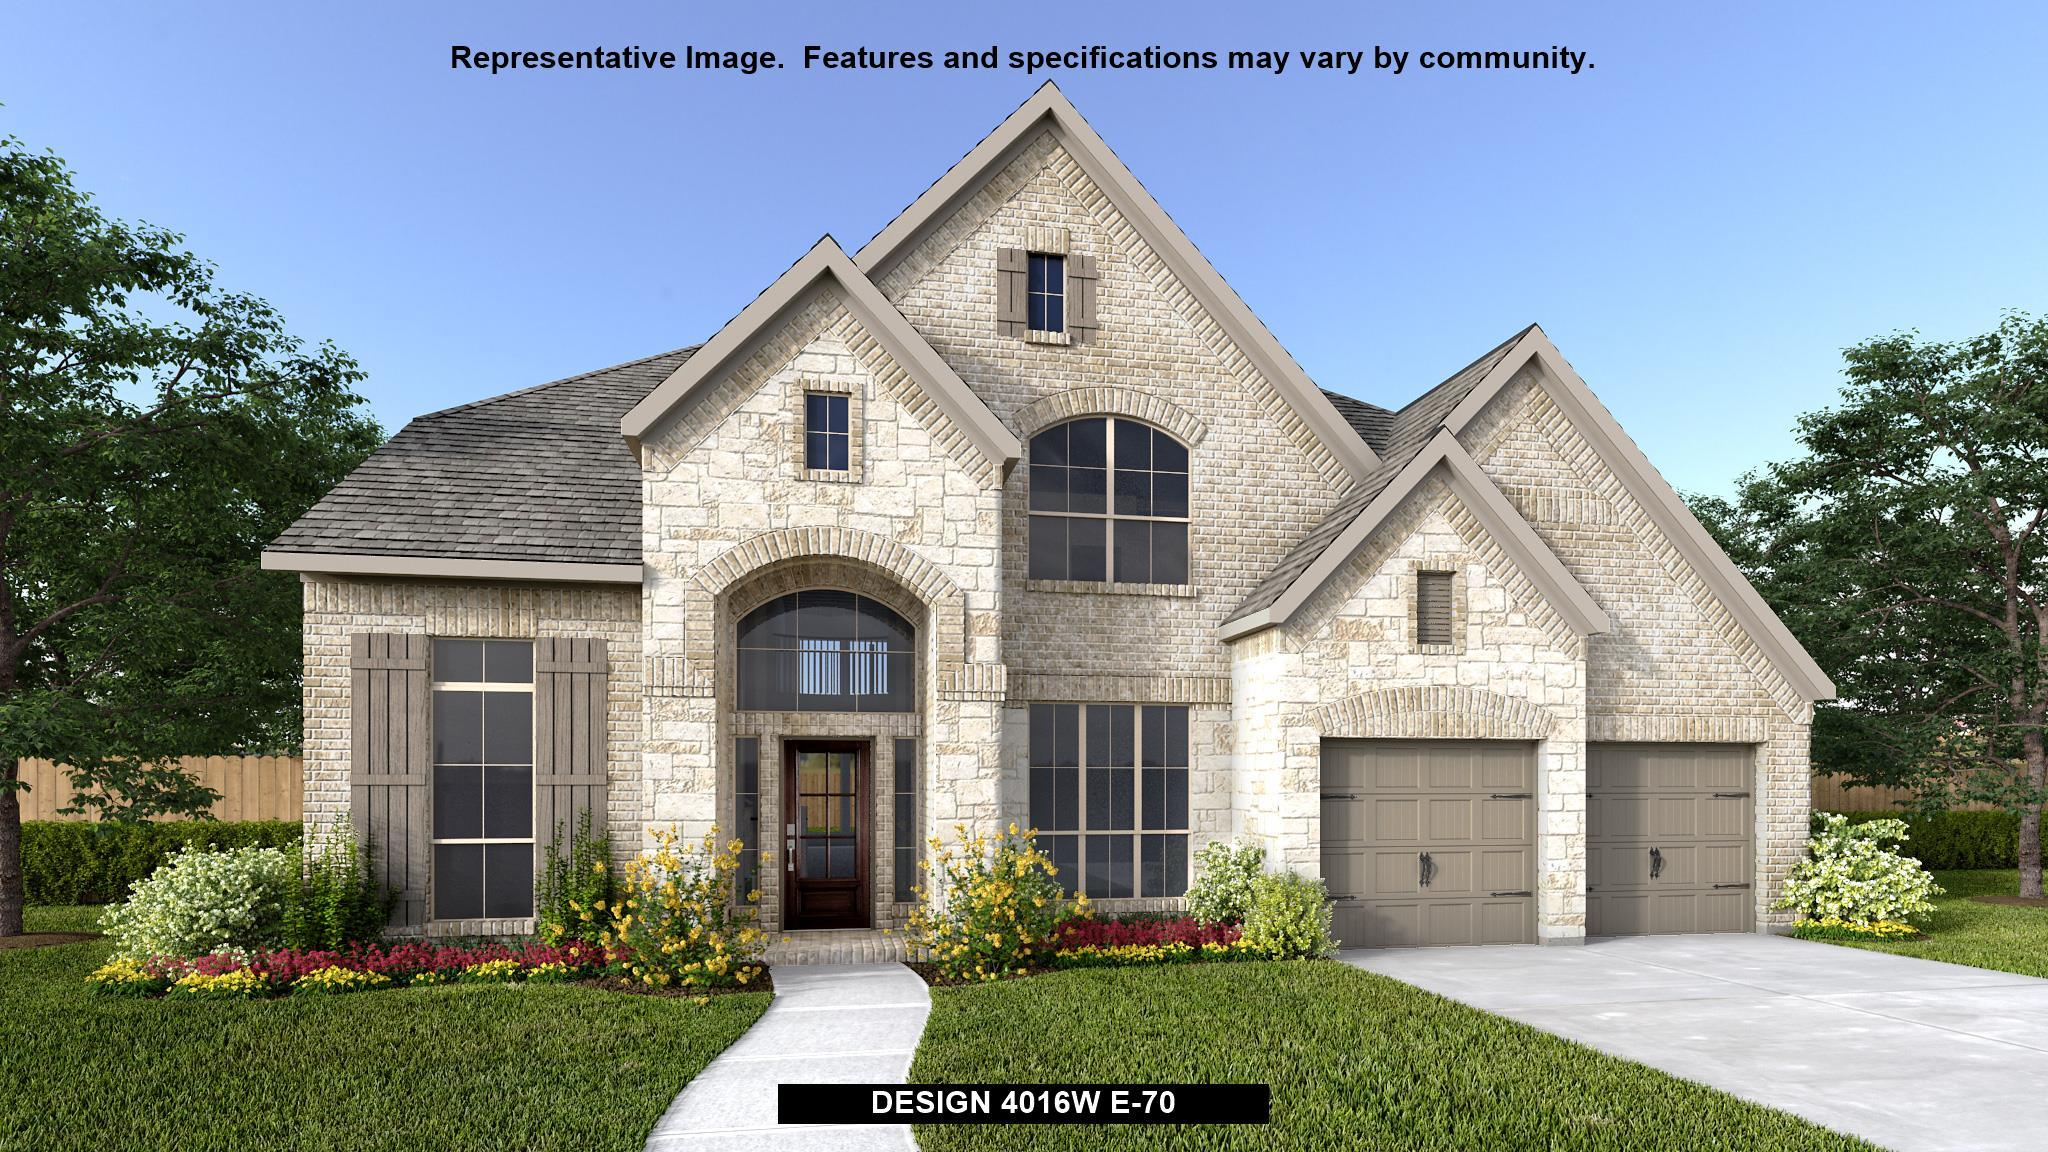 13617 IMPERIAL ISLAND LANE, Pearland, TX Homes & Land - Real Estate